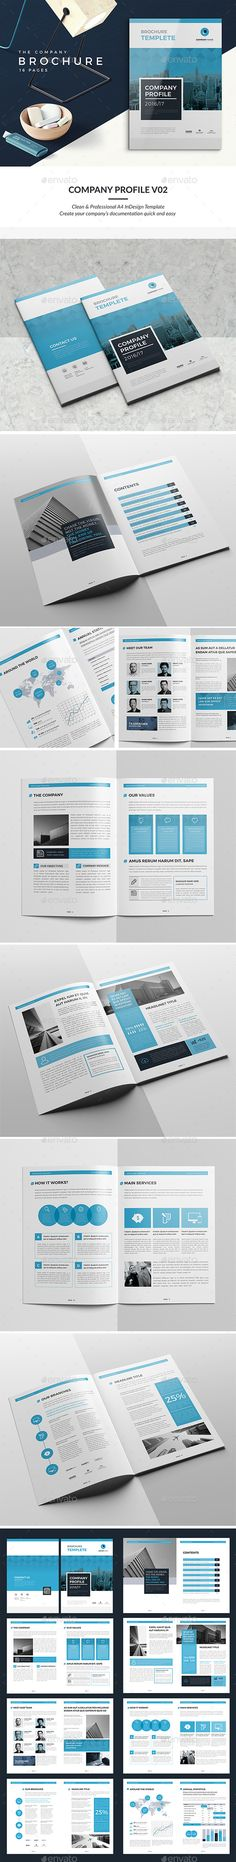 Company Profile V2 - #Corporate #Brochures Download here: https://graphicriver.net/item/company-profile-v2/19357378?ref=alena994